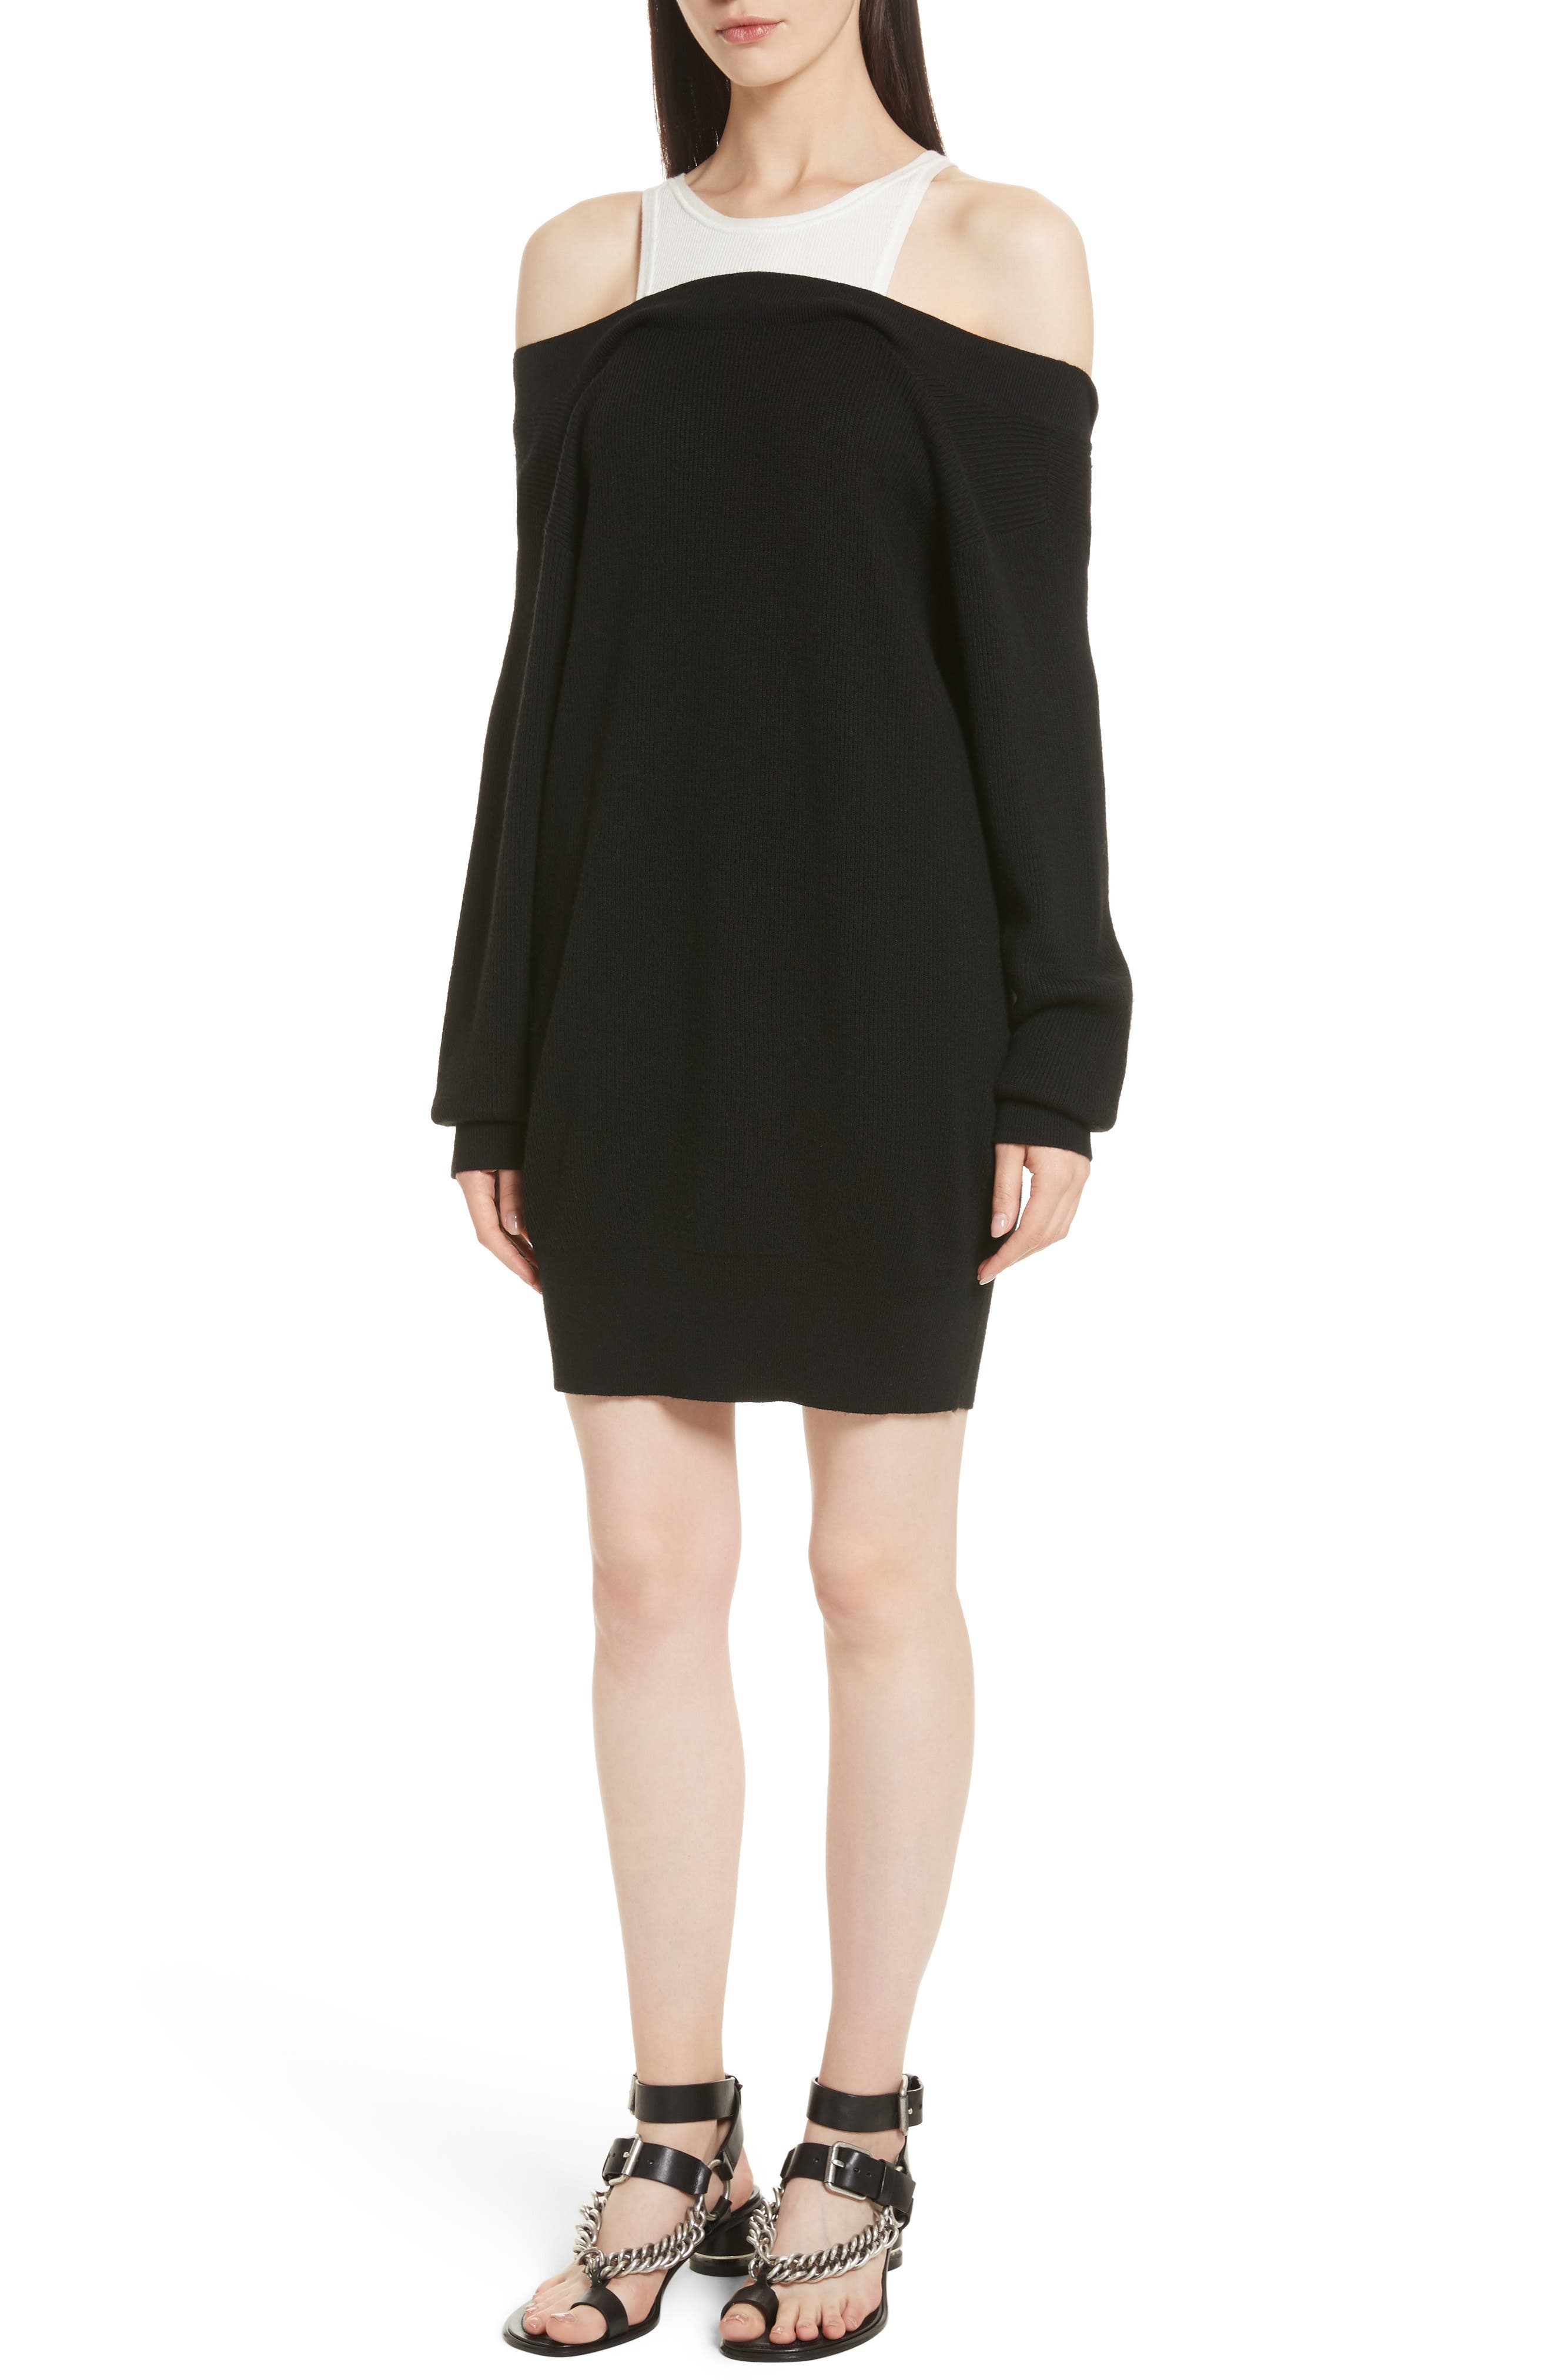 T by Alexander Wang Bi-Layer Knit Dress with Inner Tank,                             Main thumbnail 1, color,                             018